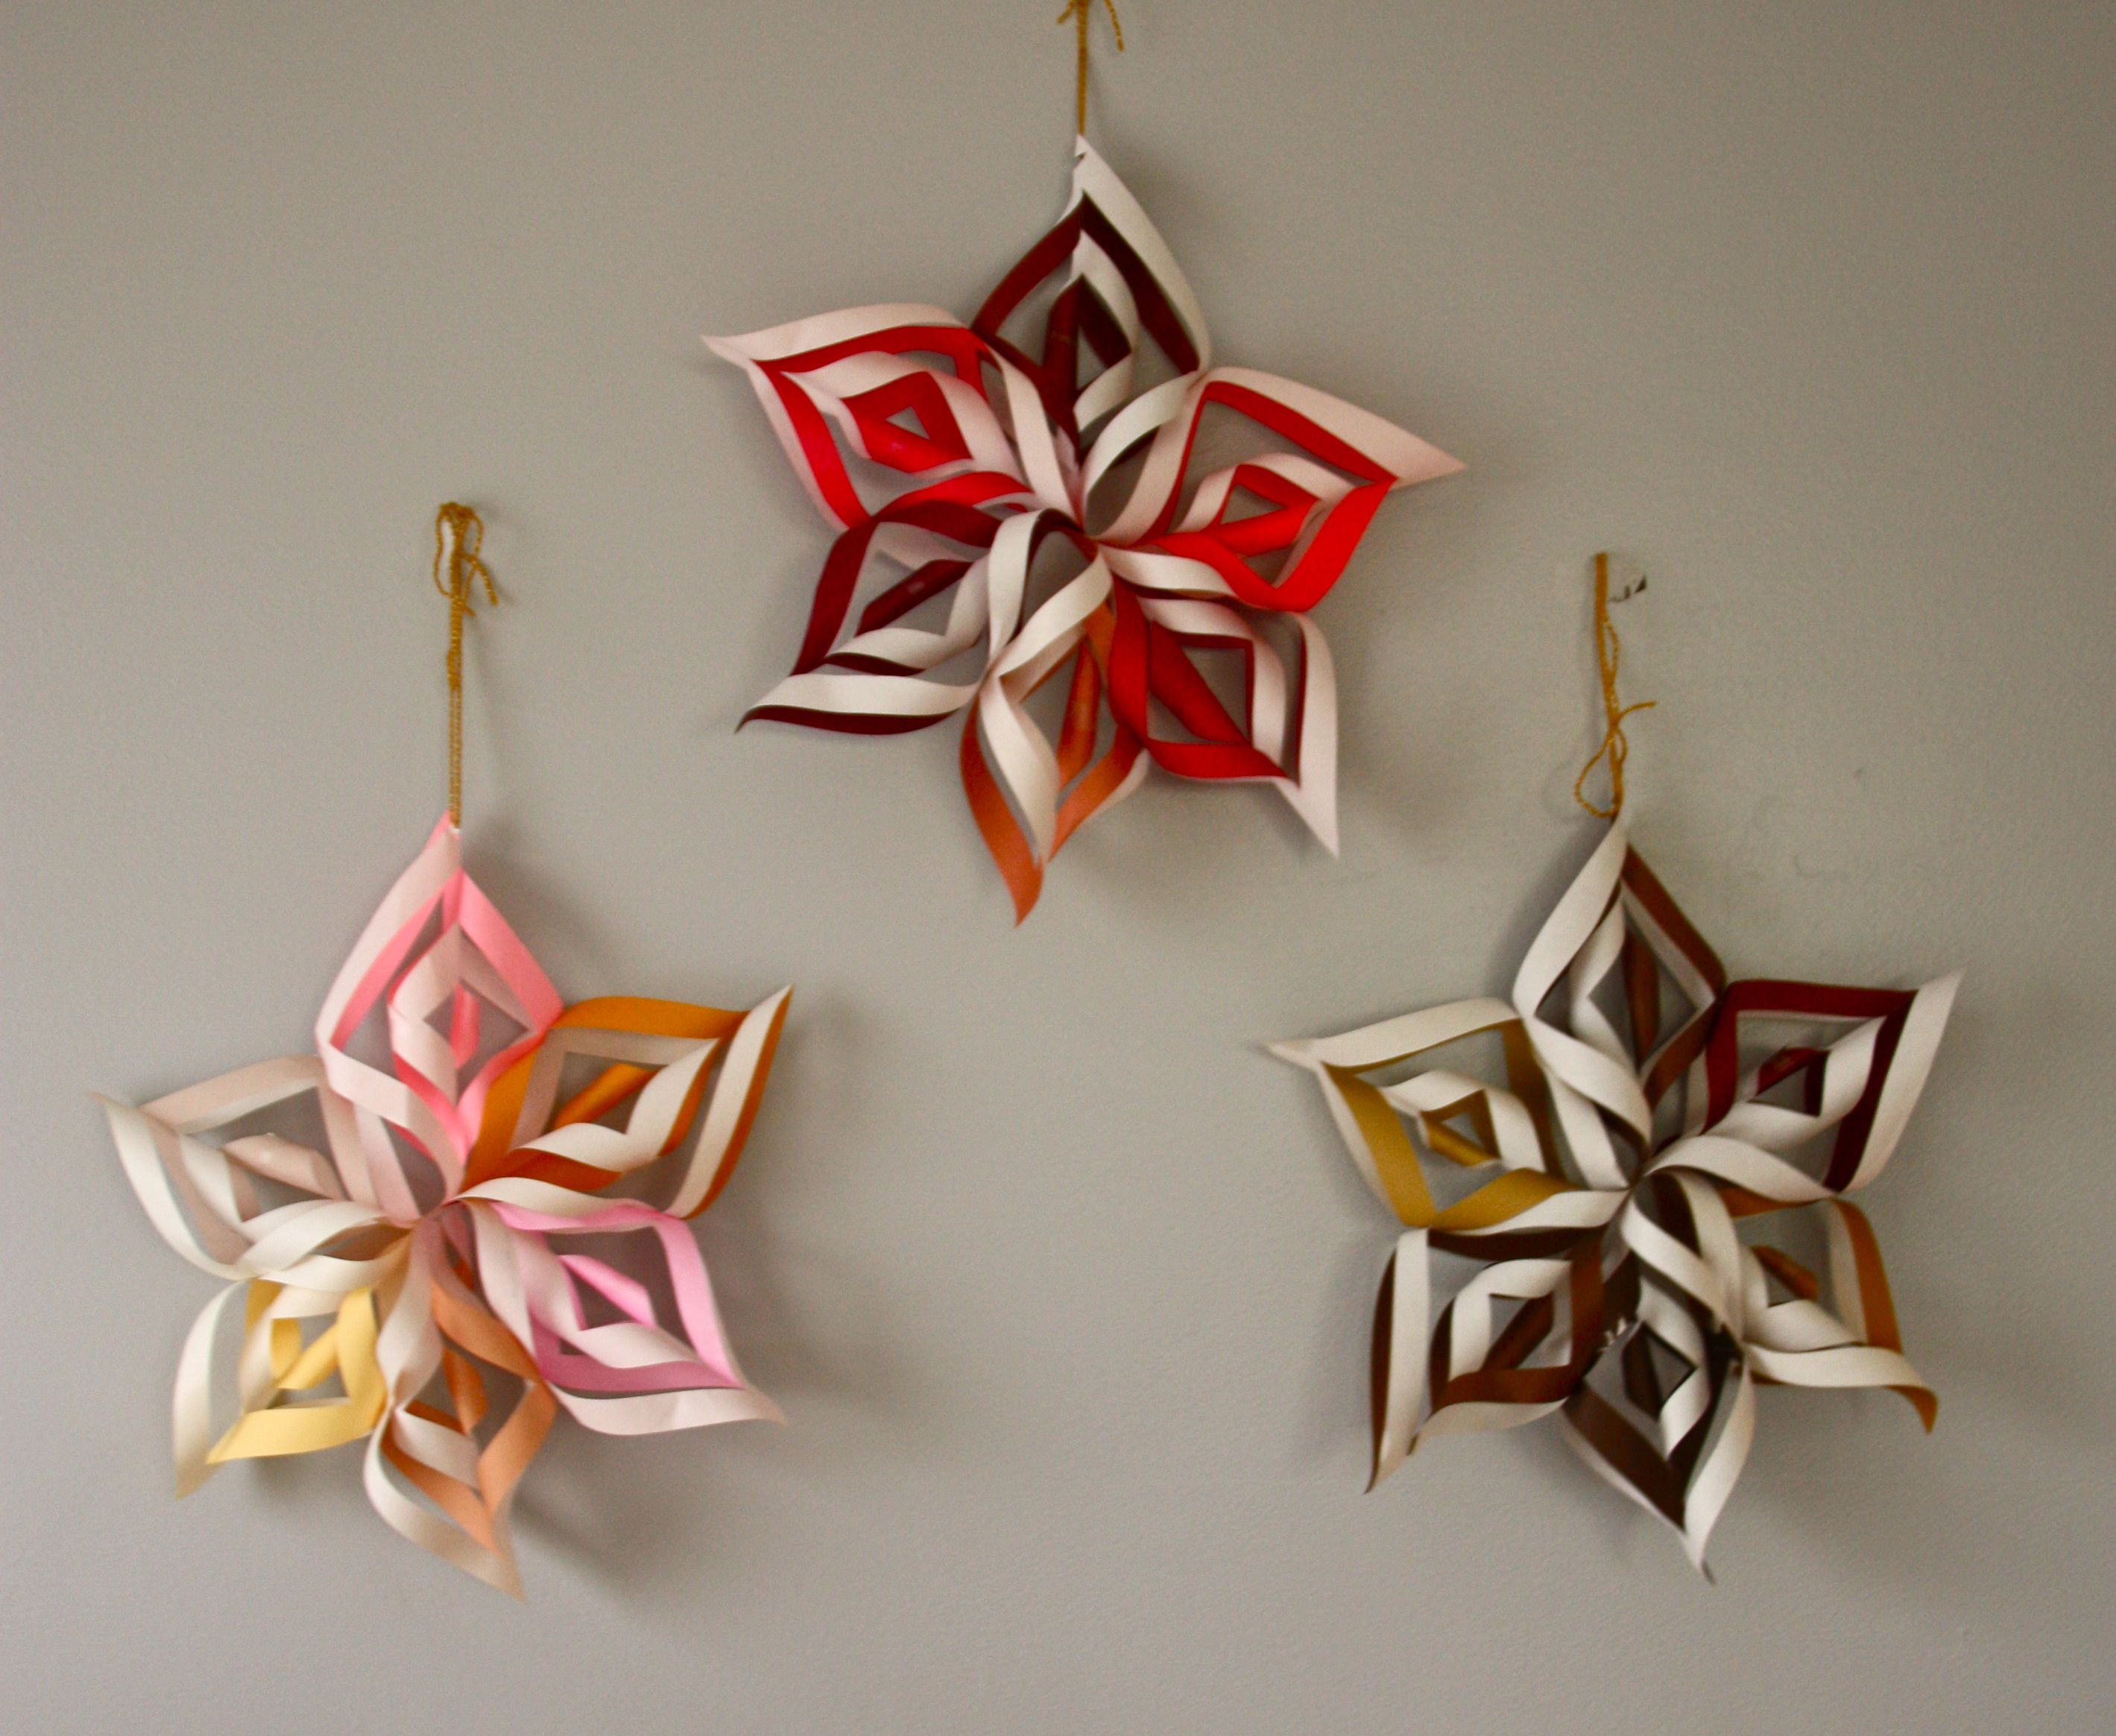 http://thismamamakesstuff.com/wp-content/uploads/2011/12/how-to-make-3D-paper-snowflake.jpg